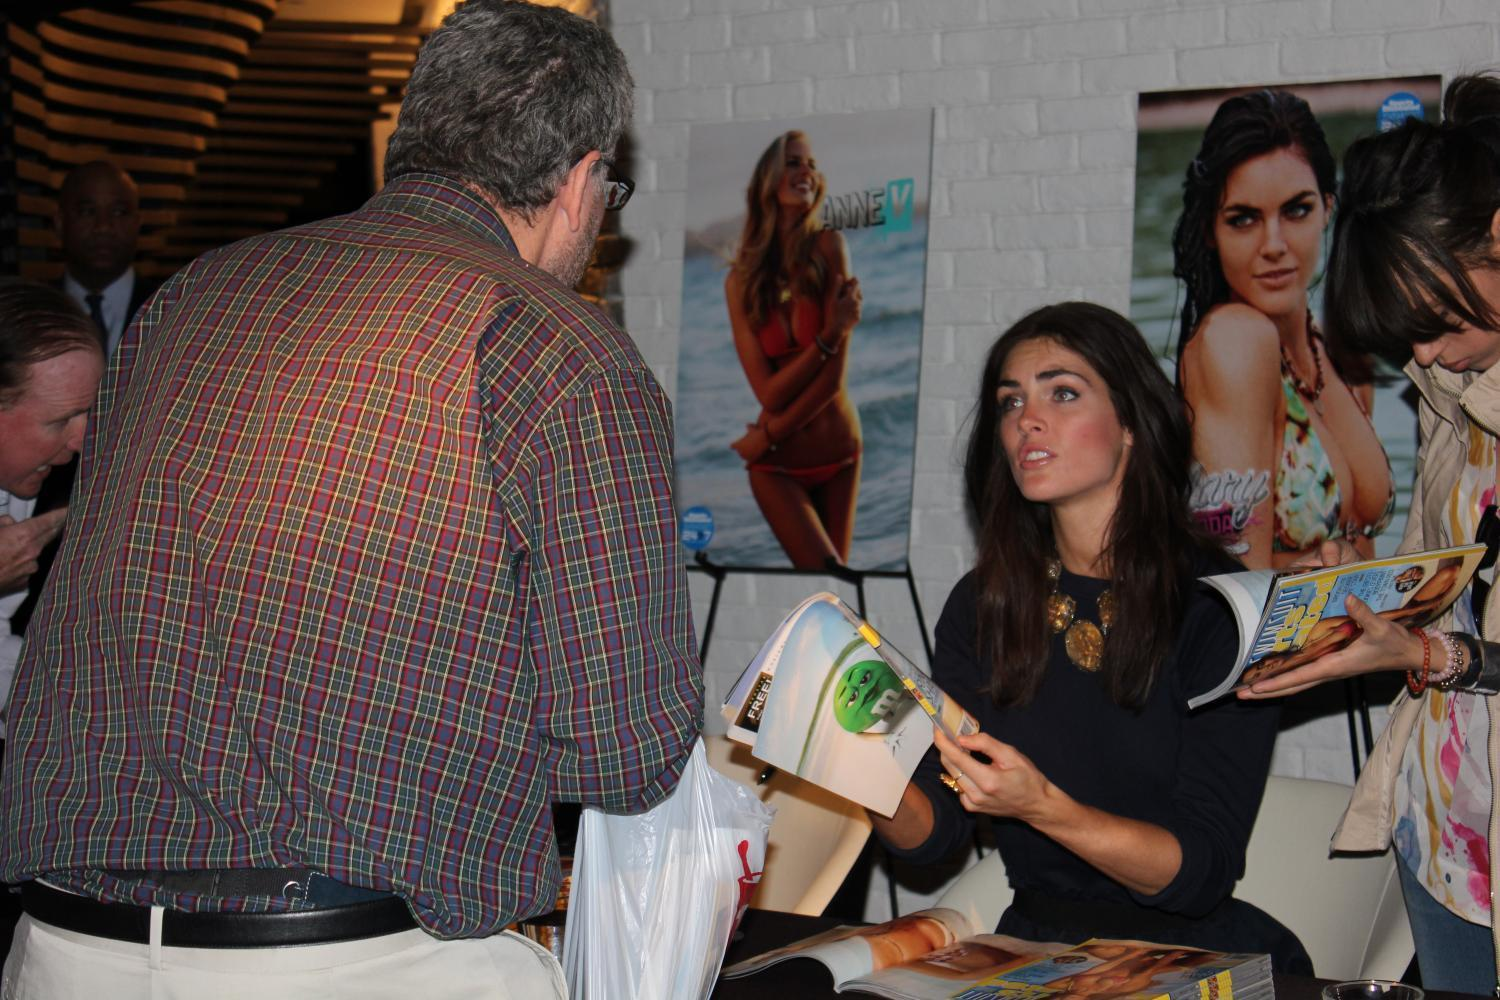 Model Hilary Rhoda signs a copy of the yearly Sports Illustrated swimsuit issue for a man at the Cosmopolitan of Las Vegas. Many people feel this issue promotes sexual objectification.